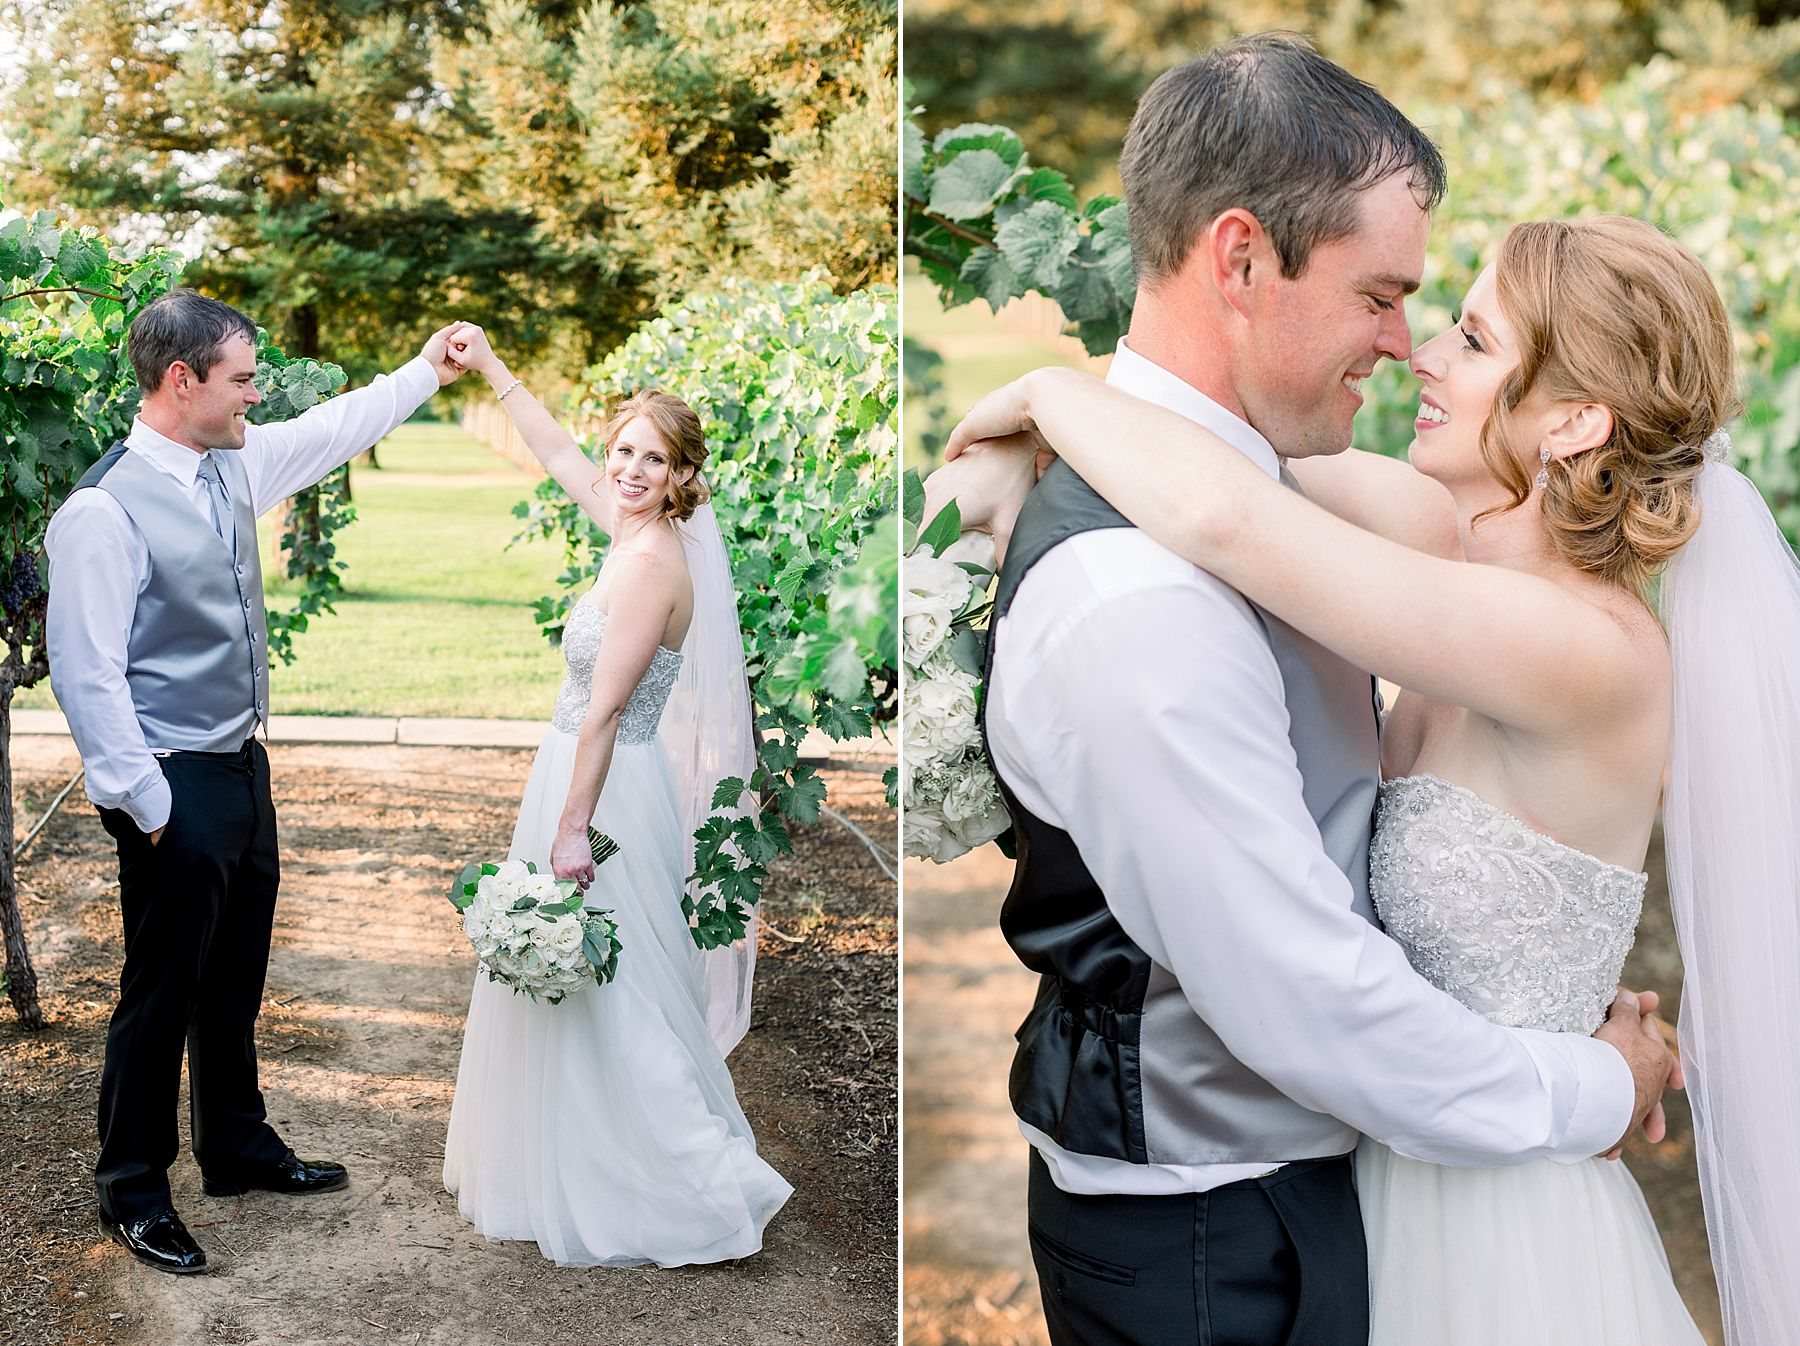 Wine and Roses Wedding - Wine and Roses Lodi Wedding Photographer - Sacramento Film Wedding Photographer - Ashley Baumgartner - Sacramento Luxury Wedding Photographer_0046.jpg